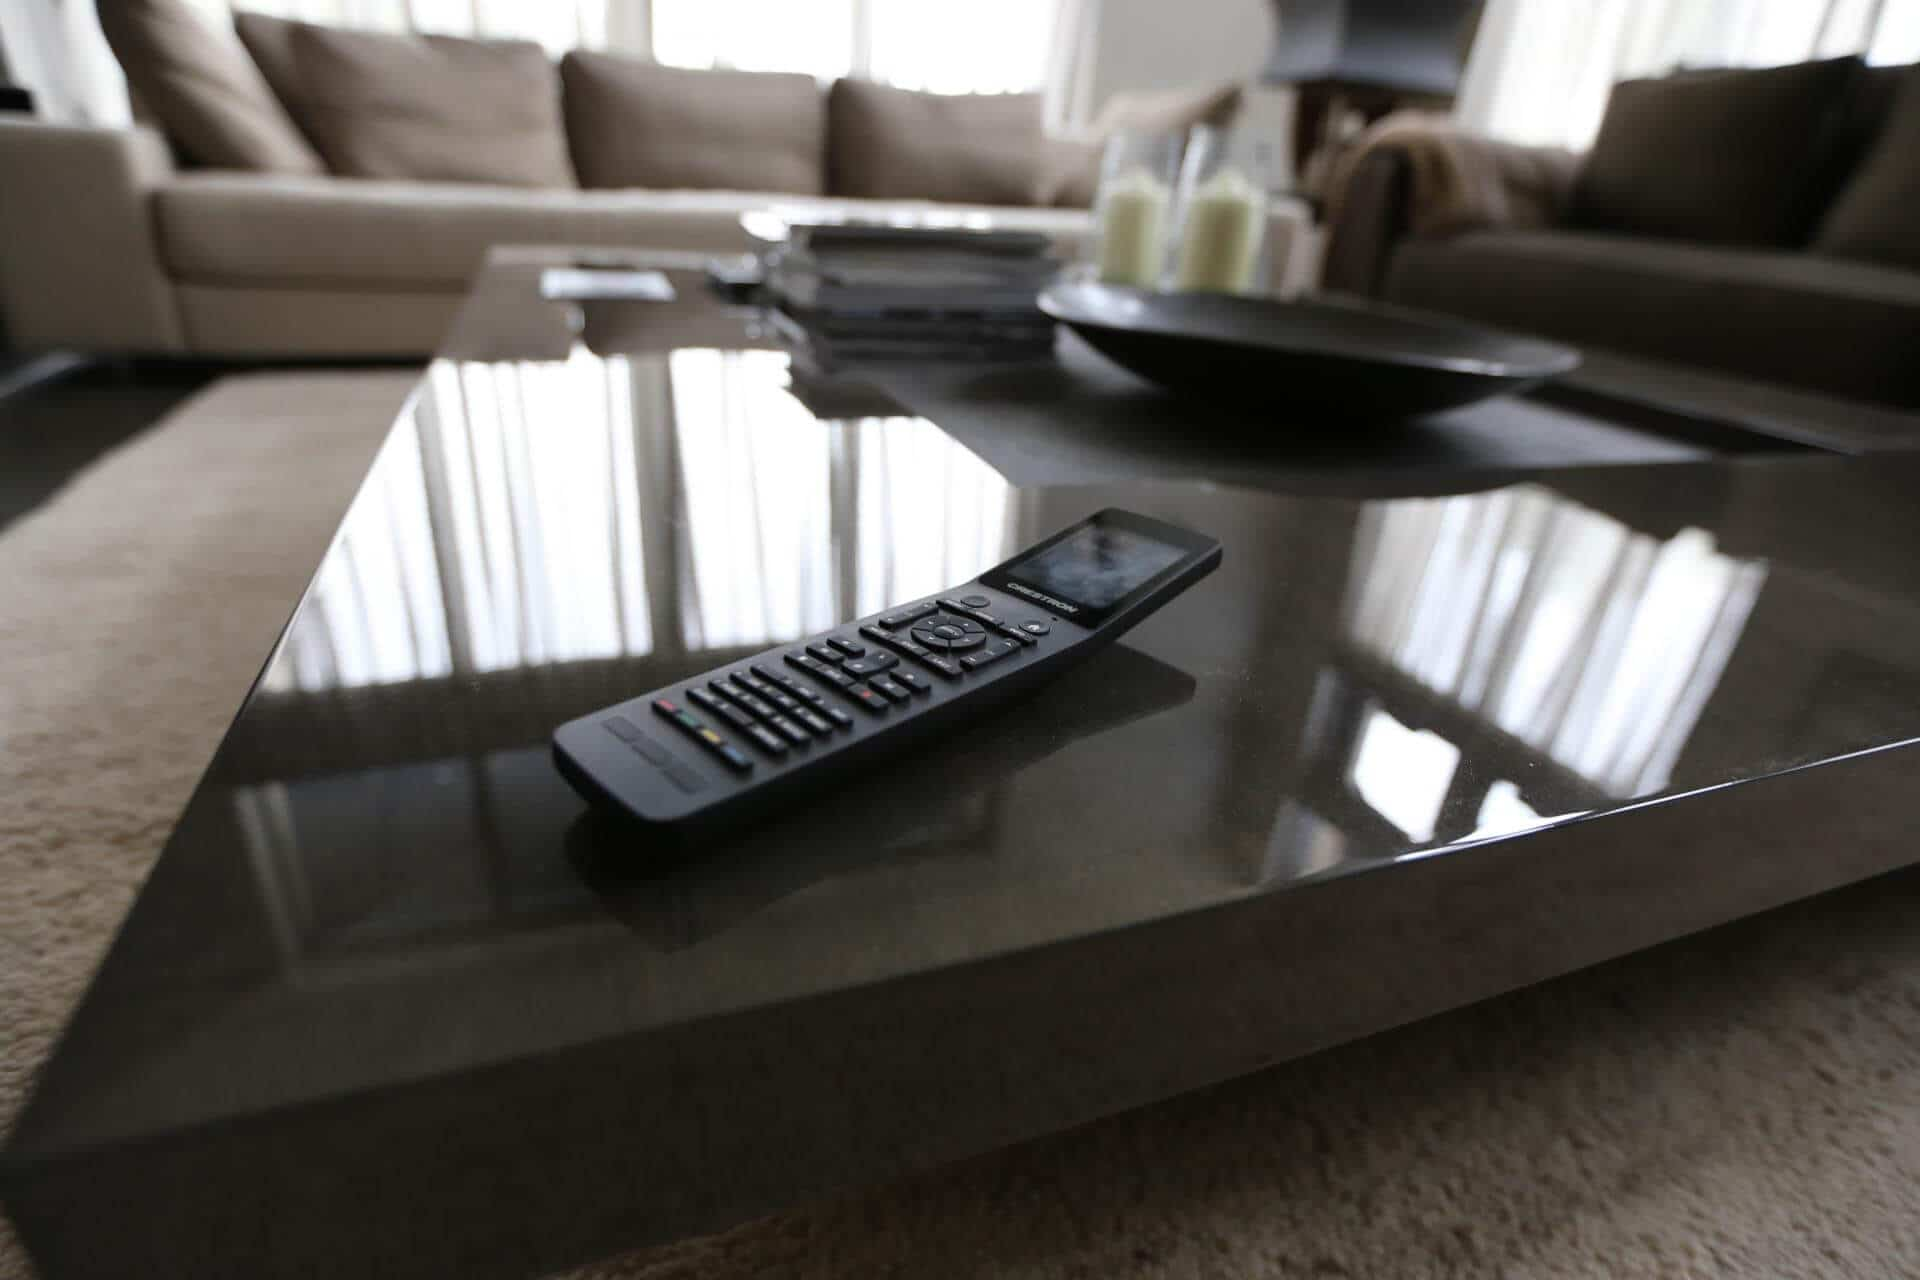 Crestron Remote Control in Living Room